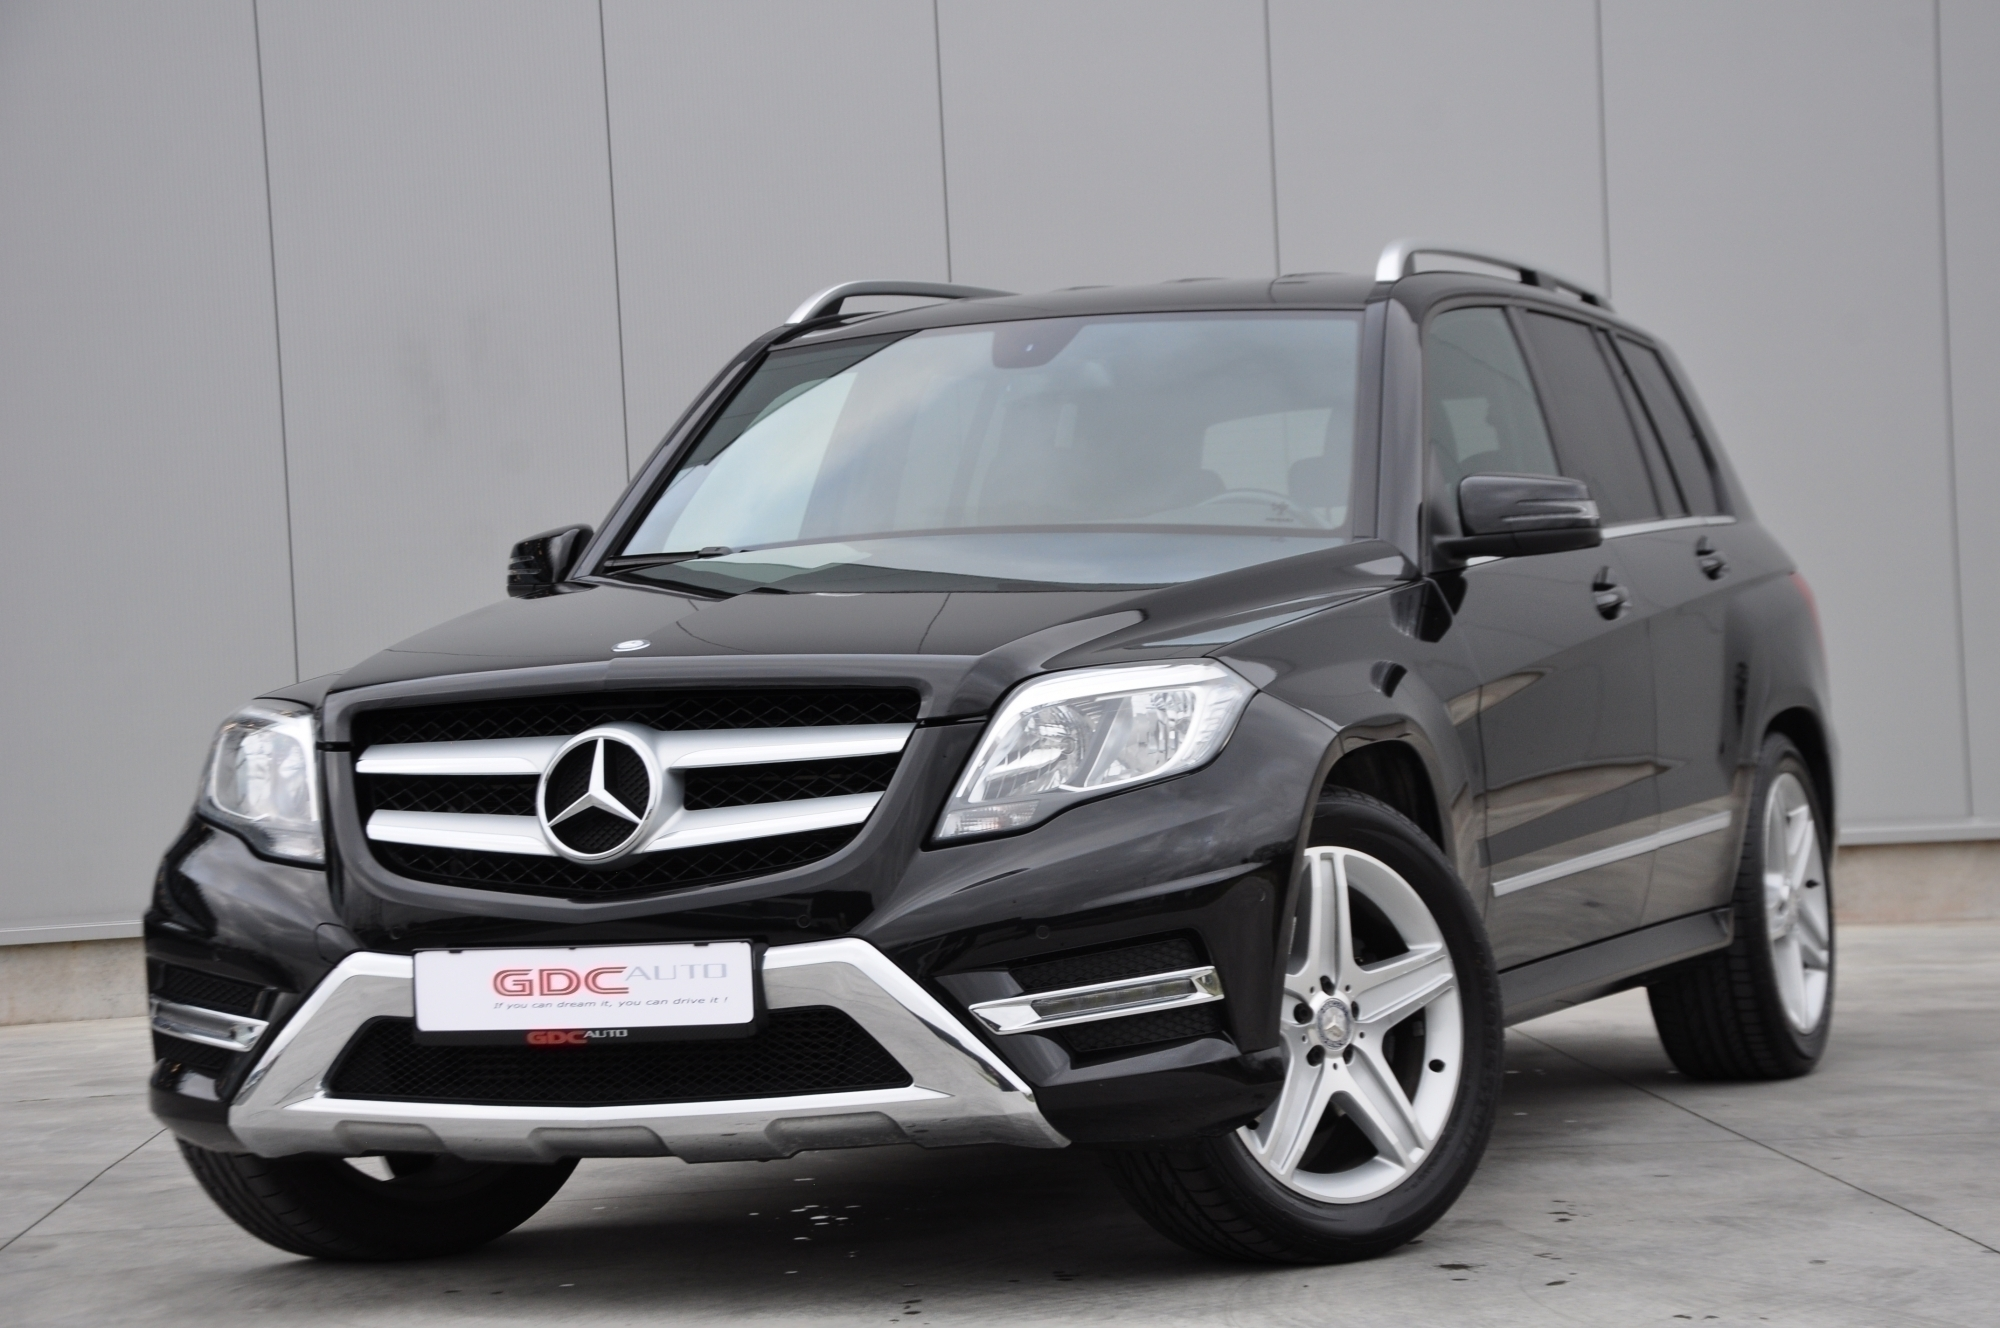 GDC Auto Mercedes-Benz GLK 220 CDI BlueTEC 4-Matic | AMG-pack.